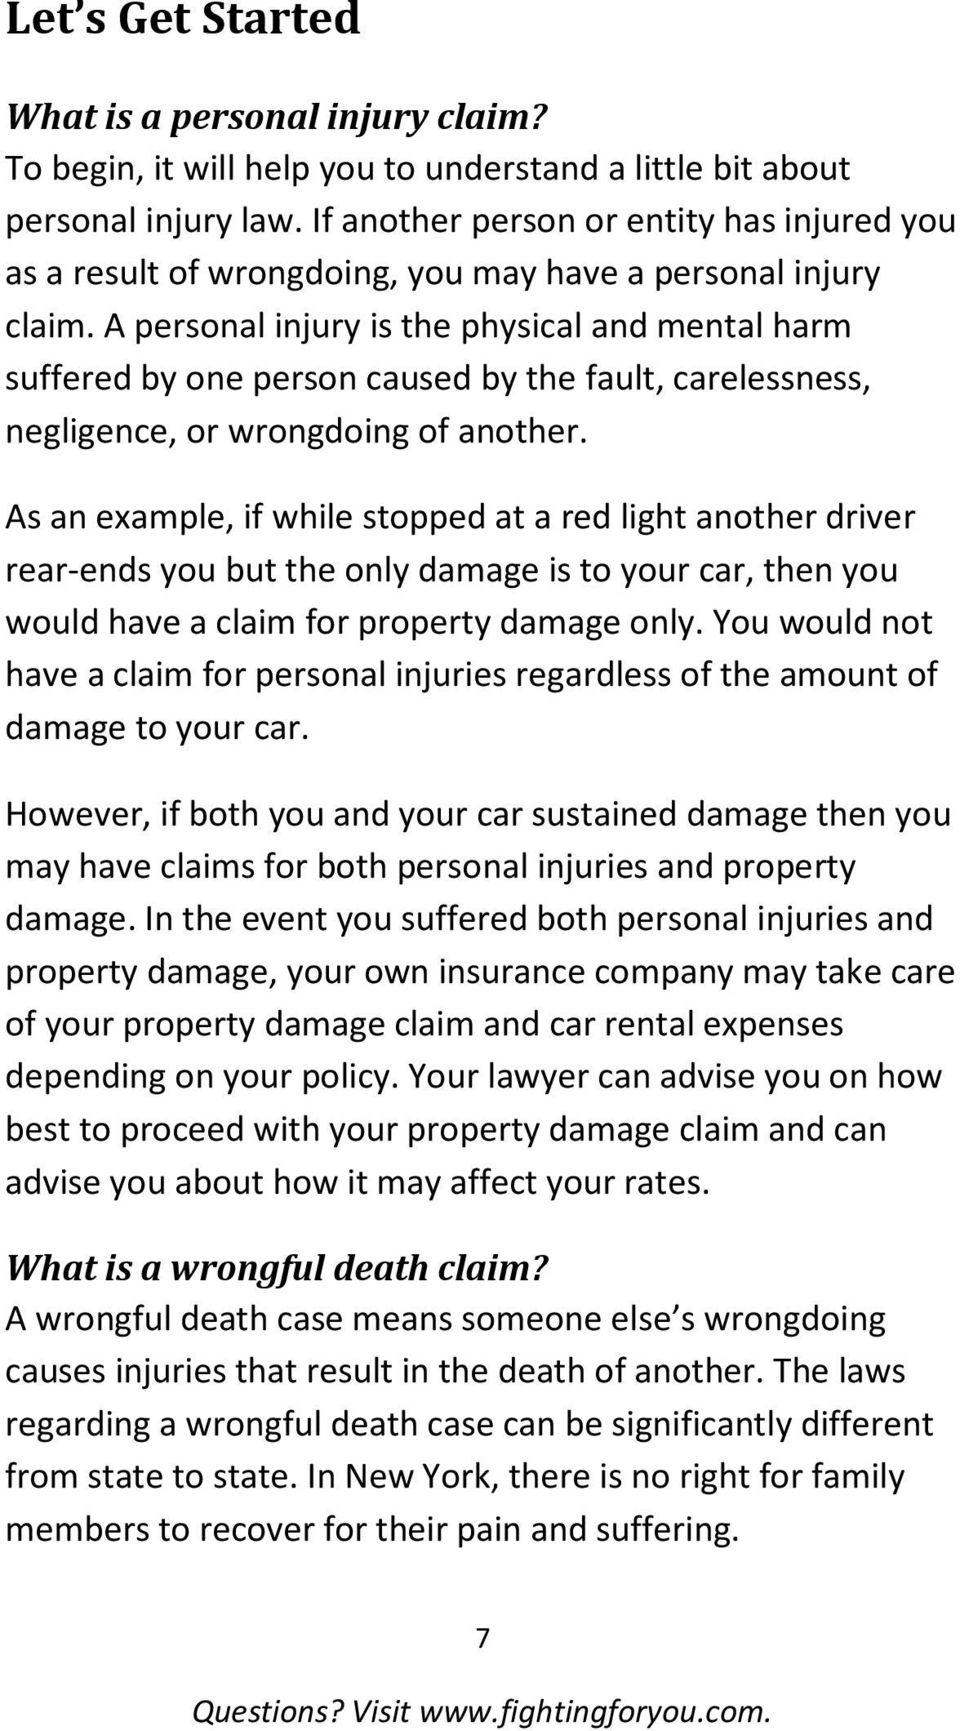 A personal injury is the physical and mental harm suffered by one person caused by the fault, carelessness, negligence, or wrongdoing of another.